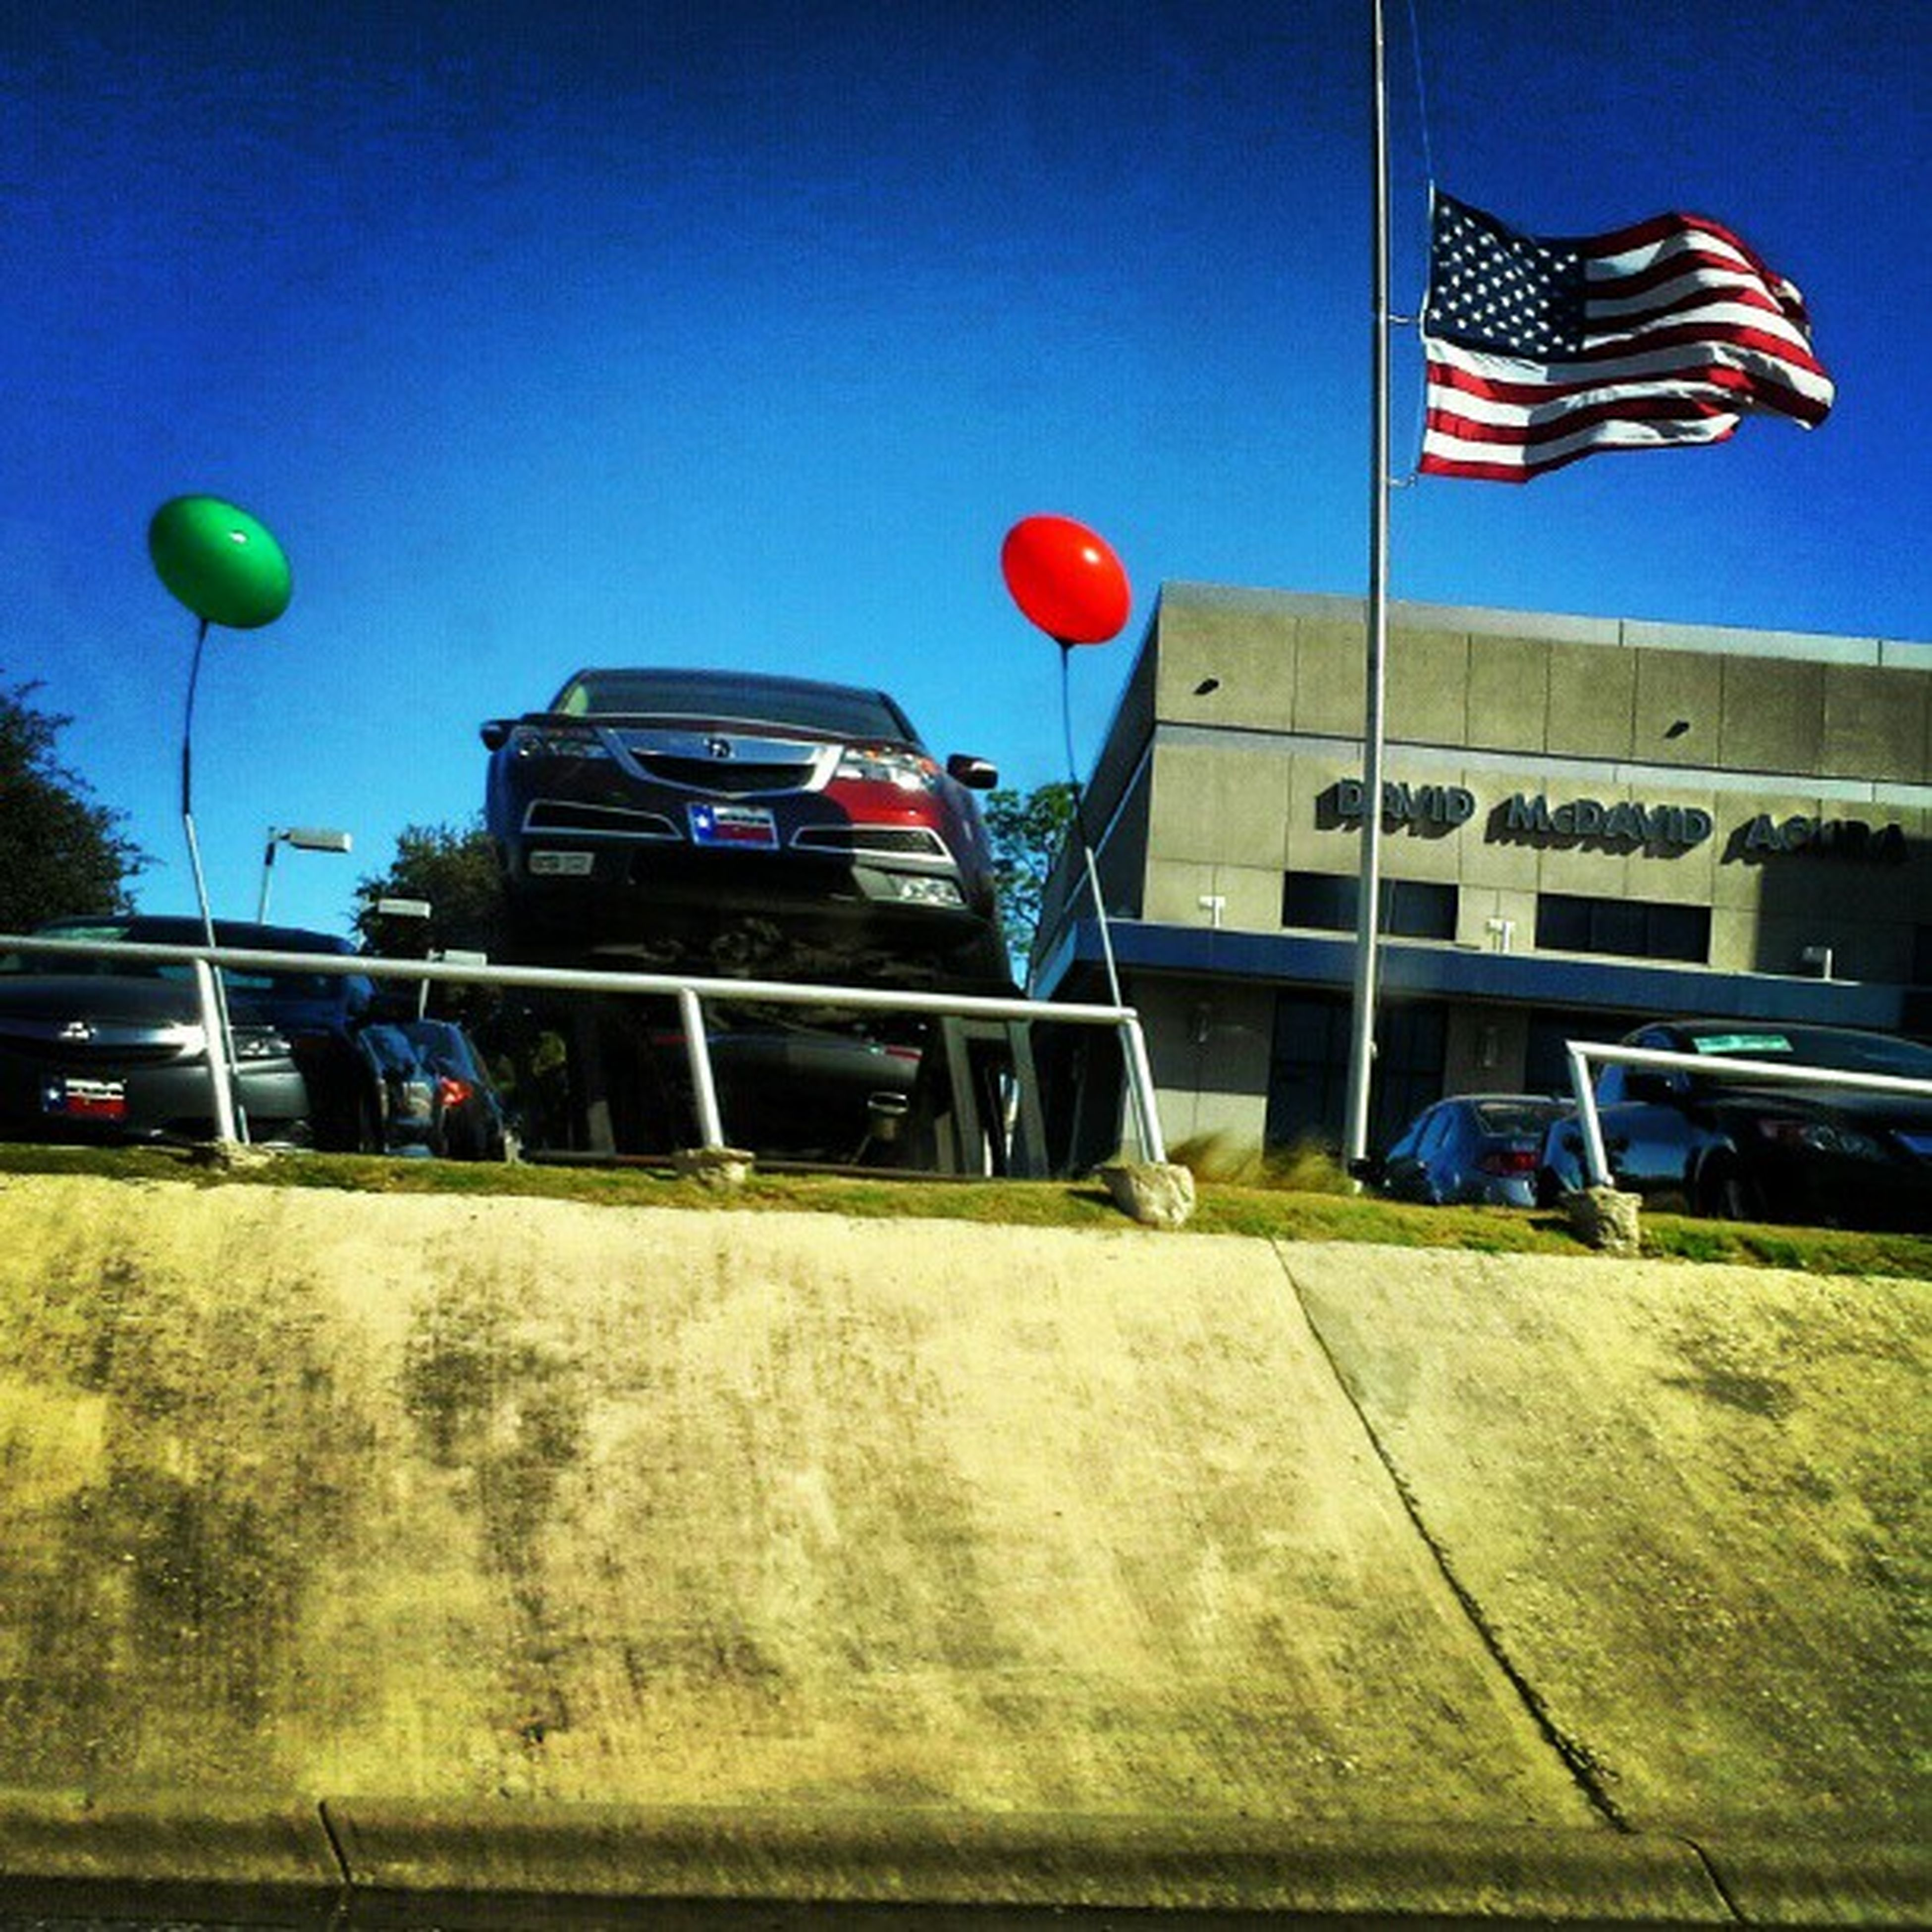 transportation, clear sky, blue, mid-air, building exterior, flag, mode of transport, sky, flying, built structure, hot air balloon, multi colored, balloon, low angle view, patriotism, copy space, sport, architecture, street light, american flag